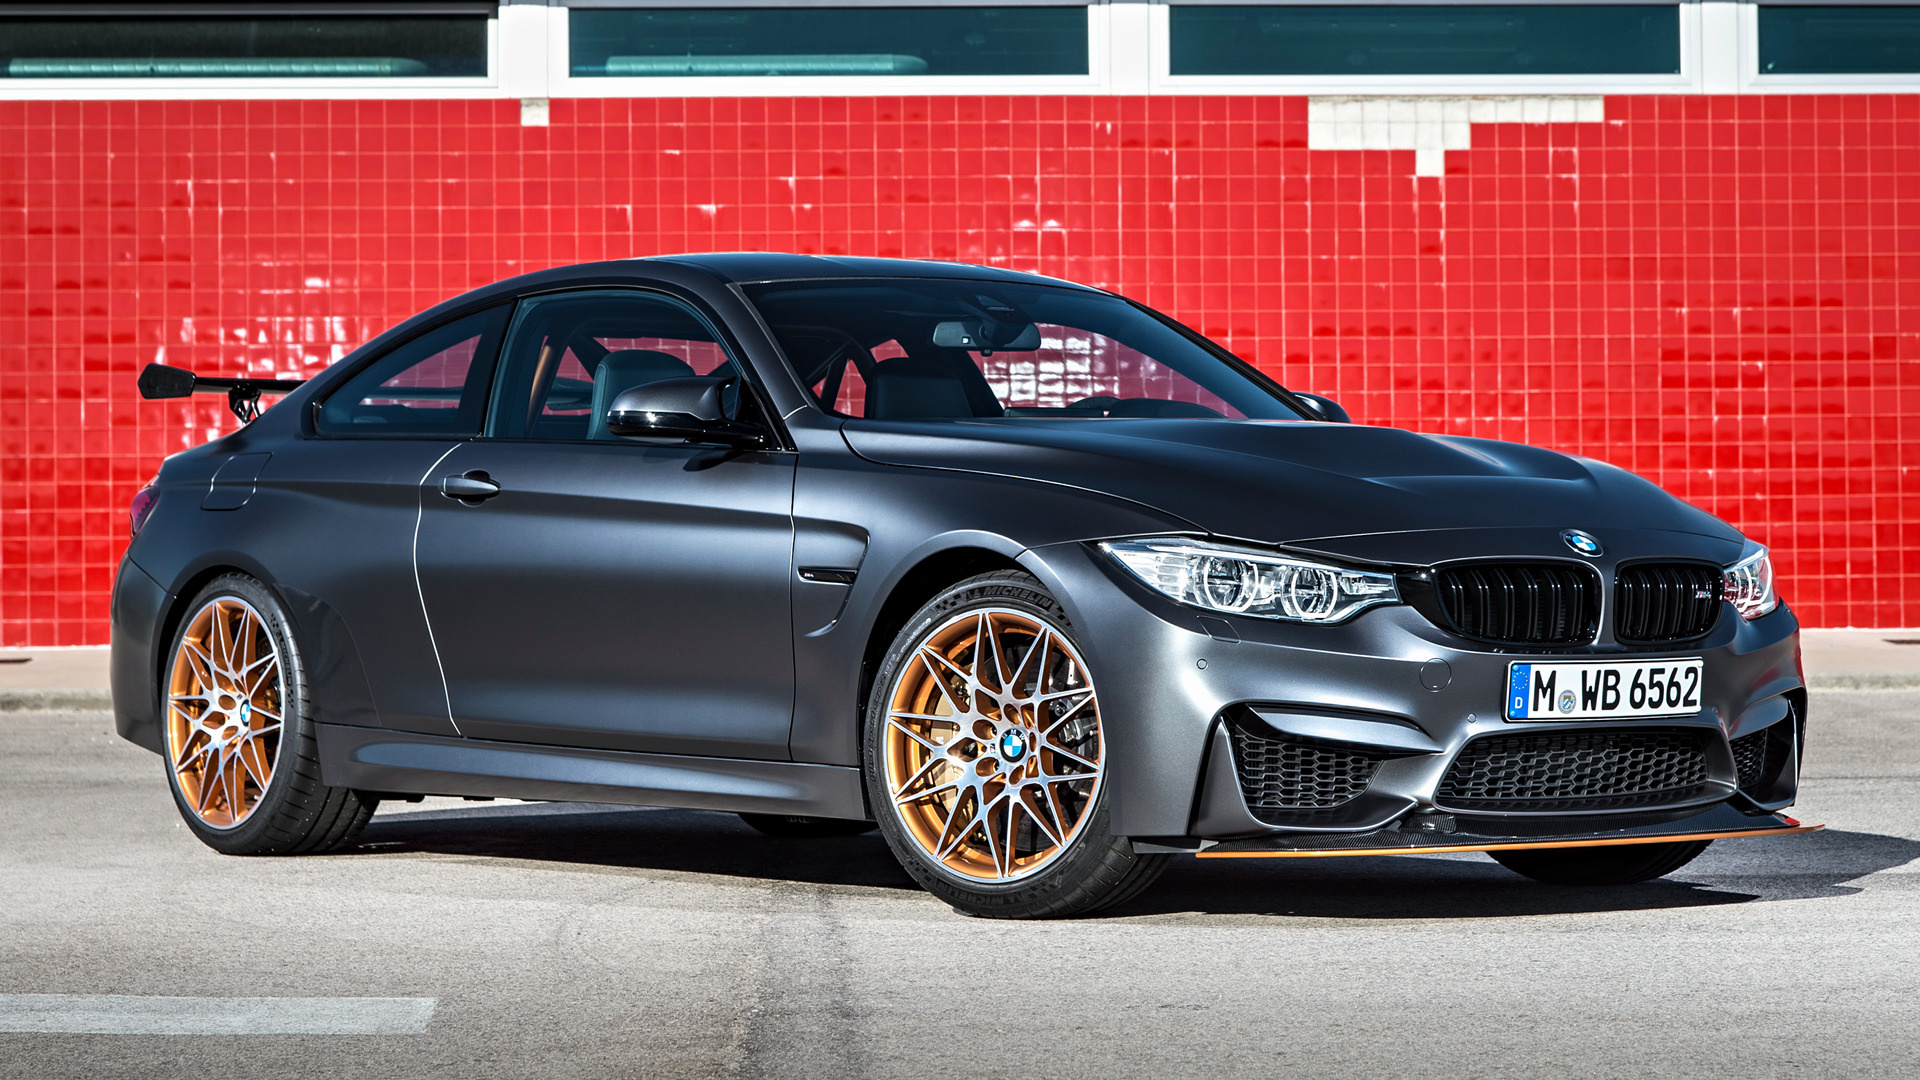 2016 Bmw M4 Gts Coupe Wallpapers And Hd Images Car Pixel